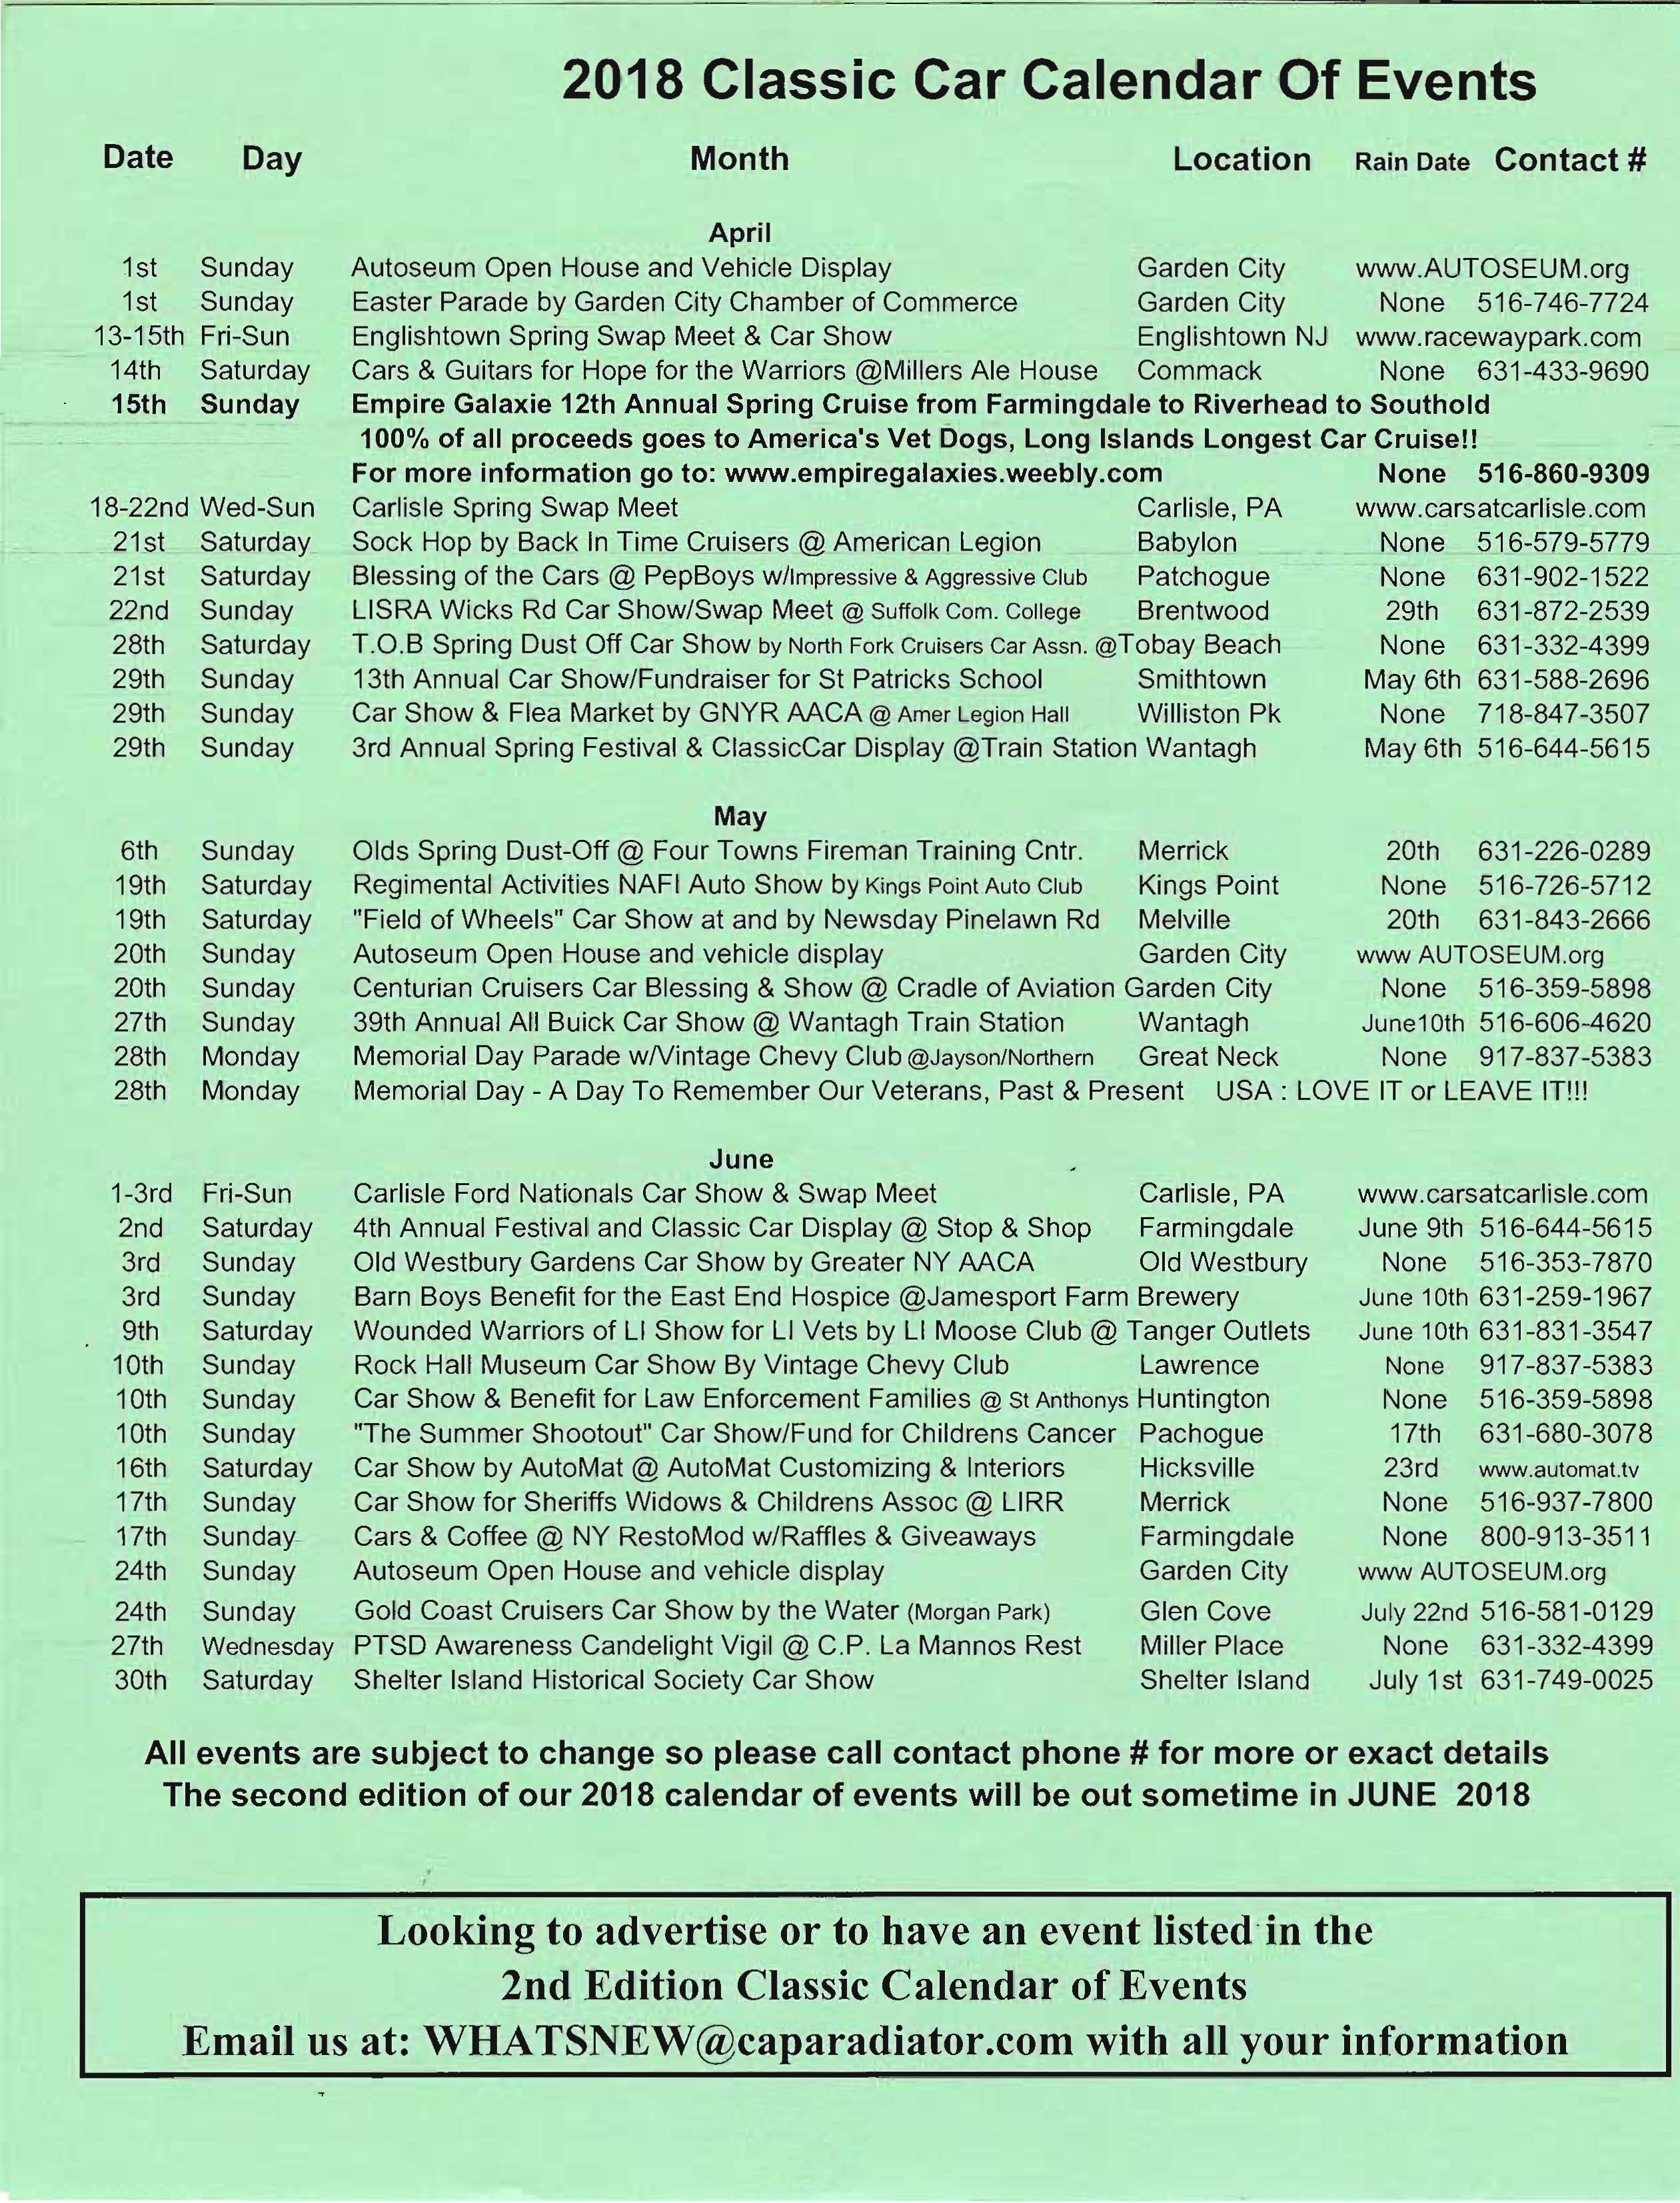 2018 Classic Car Calendar of Events First Edition through July Page 2